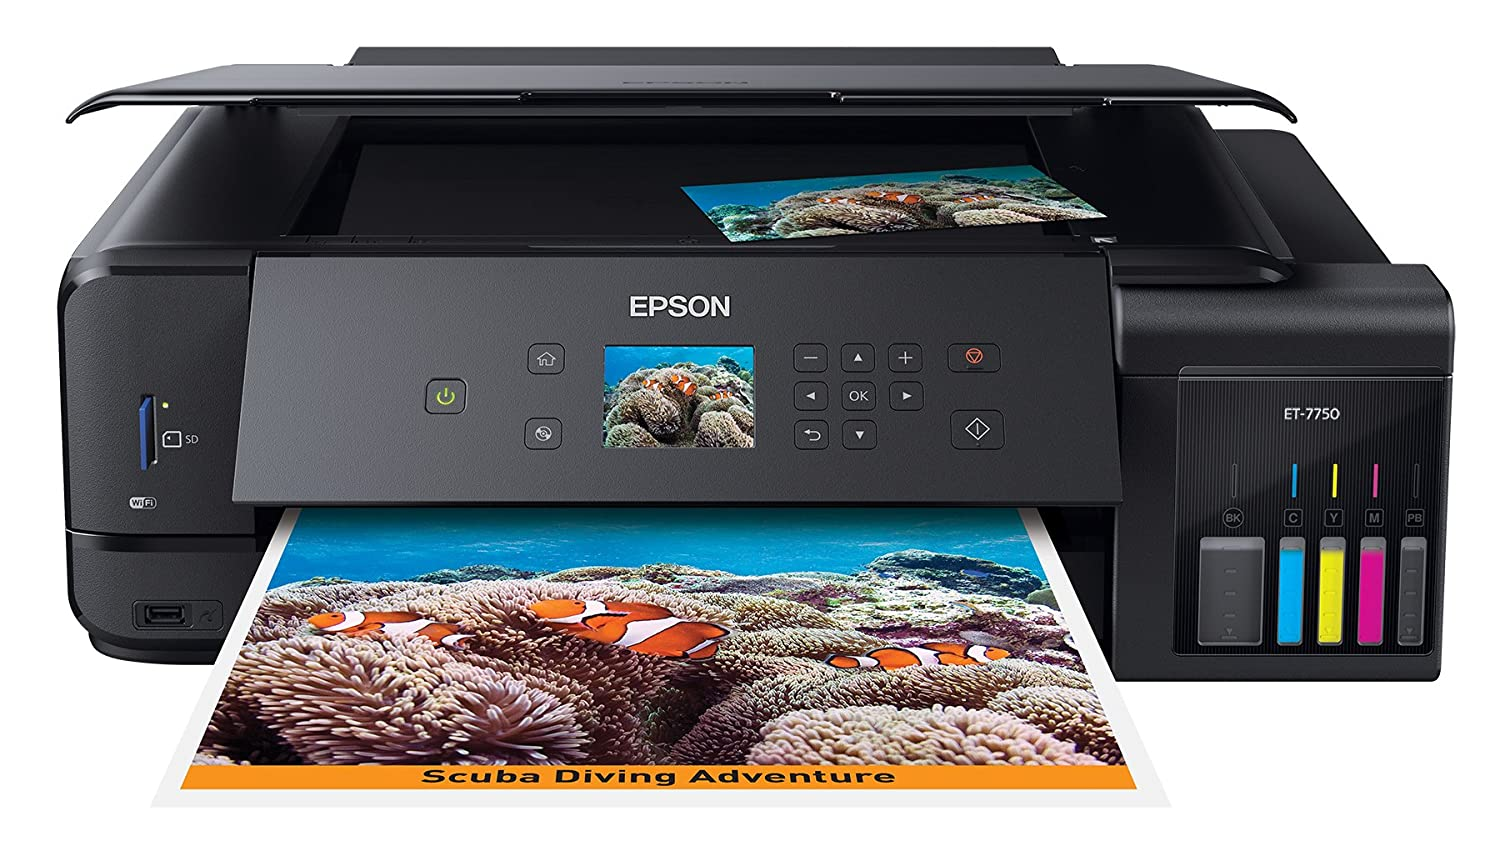 Epson Expression ET-7750 Printer Black Friday Deal 2020